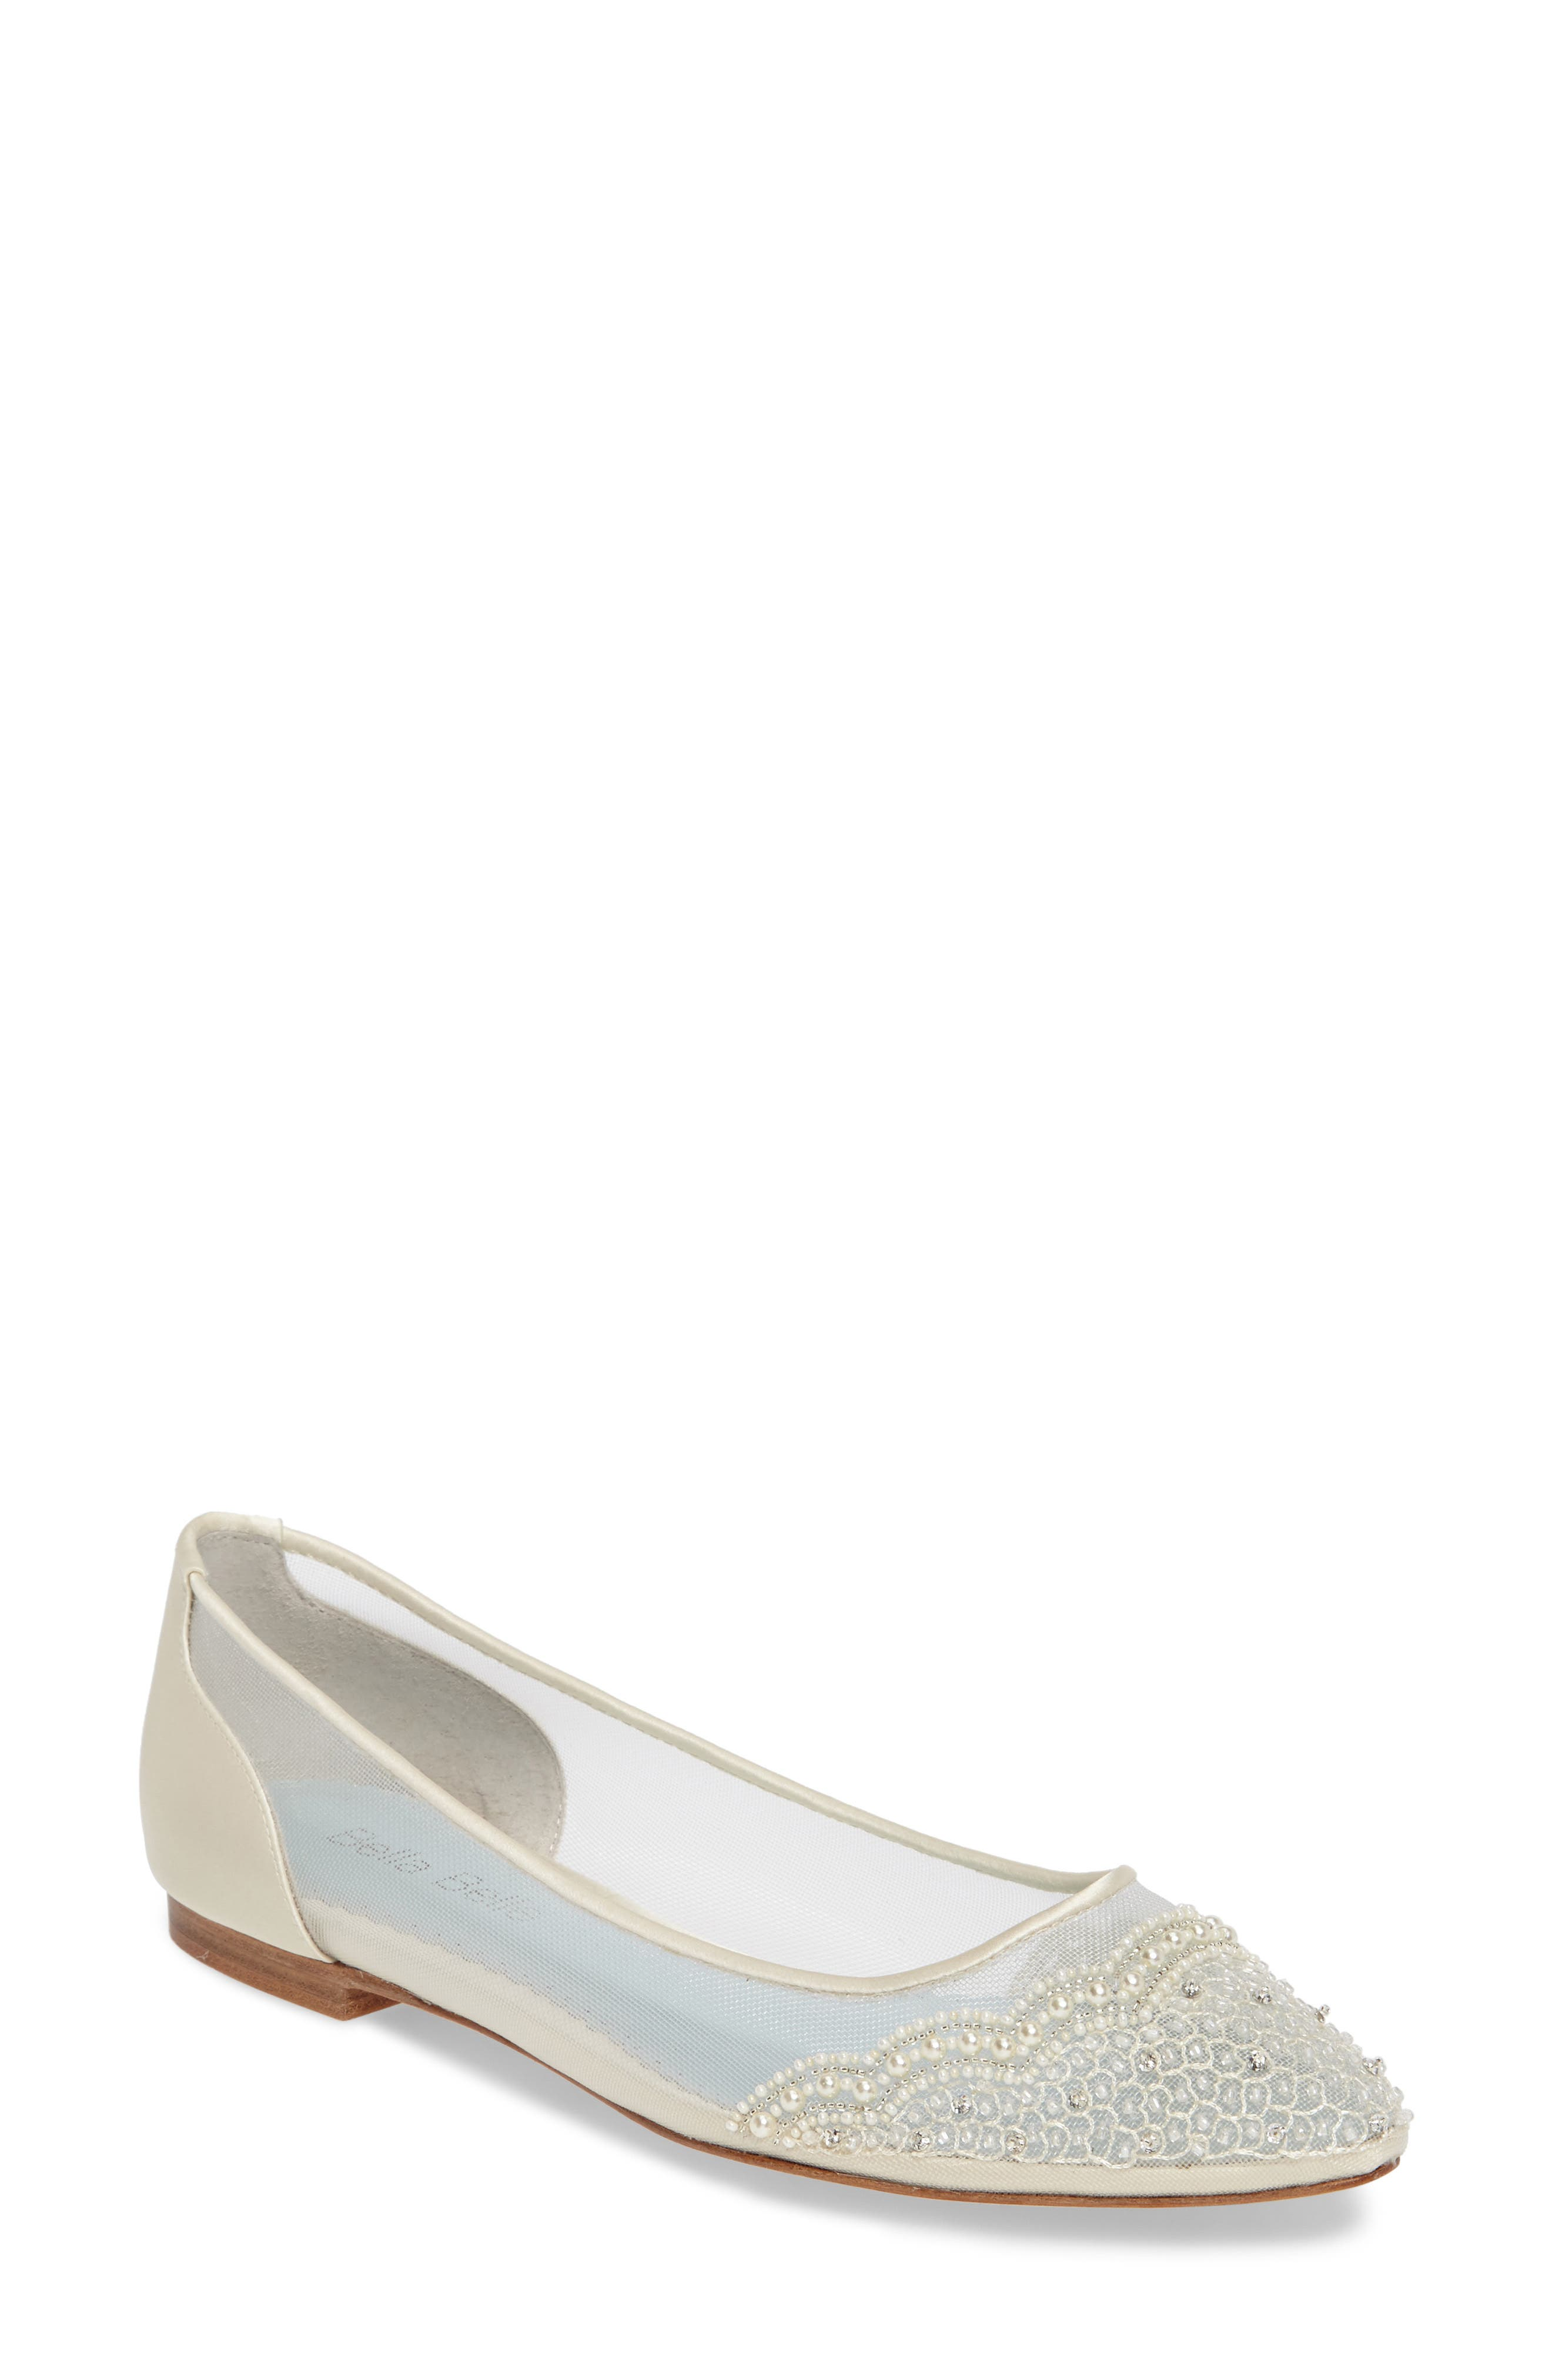 BELLA BELLE, Hailey Skimmer Flat, Main thumbnail 1, color, IVORY FABRIC